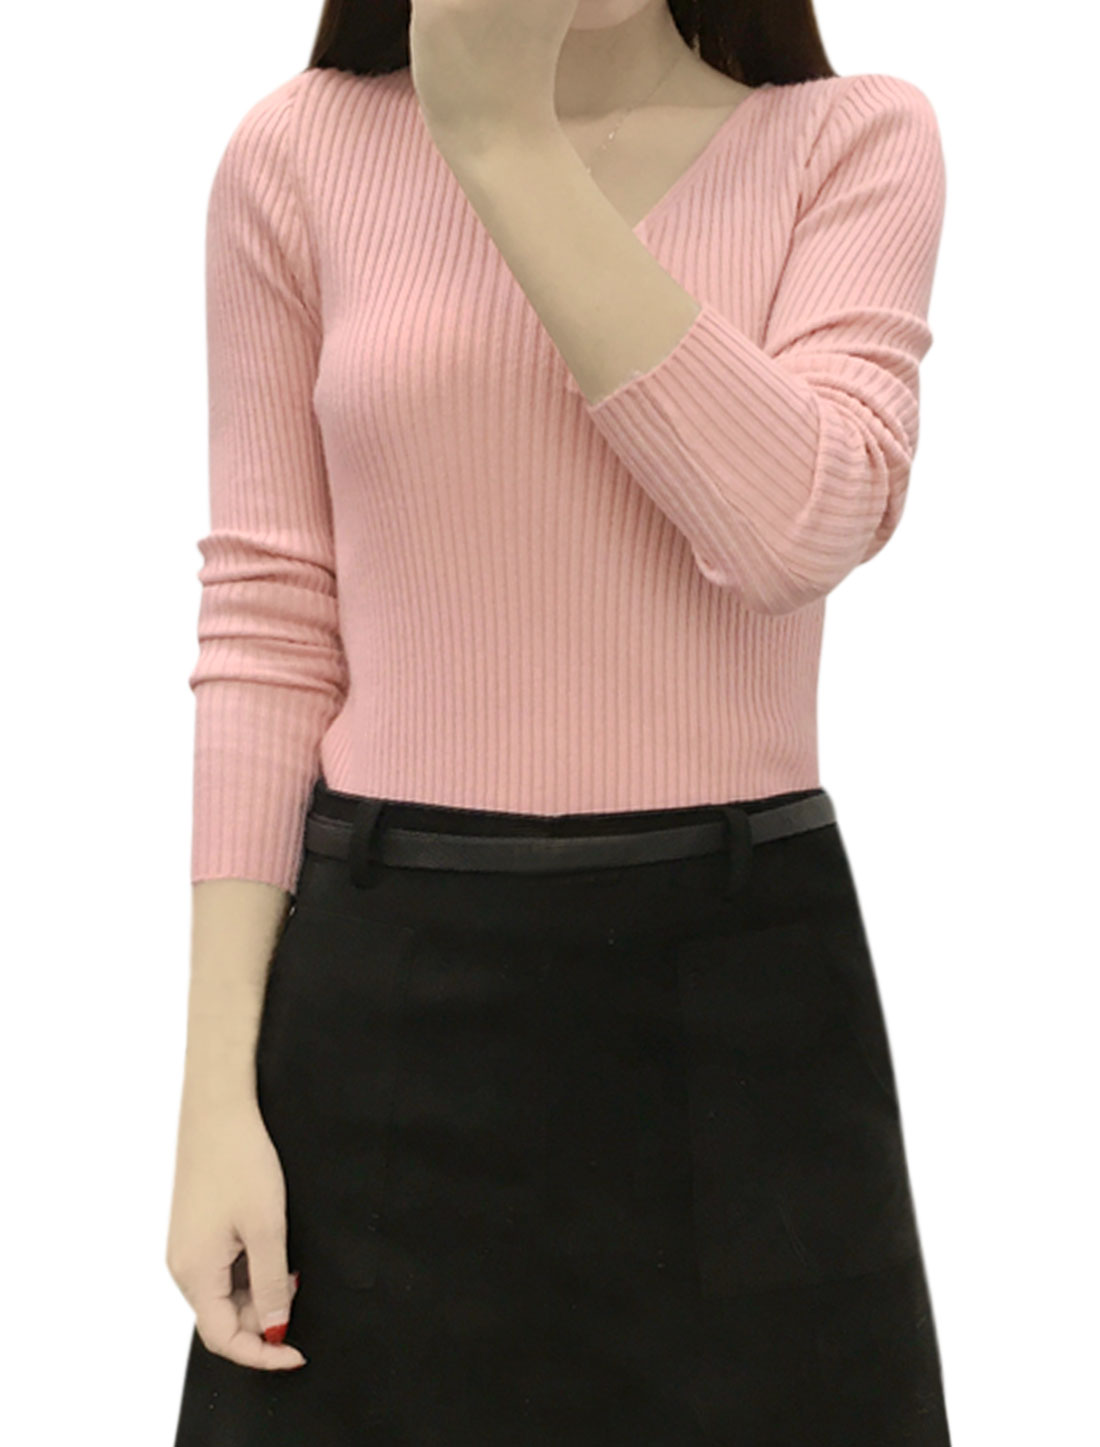 Women Long Sleeves V Neck Ribbed Slim Fit Knit Shirt Pink XS